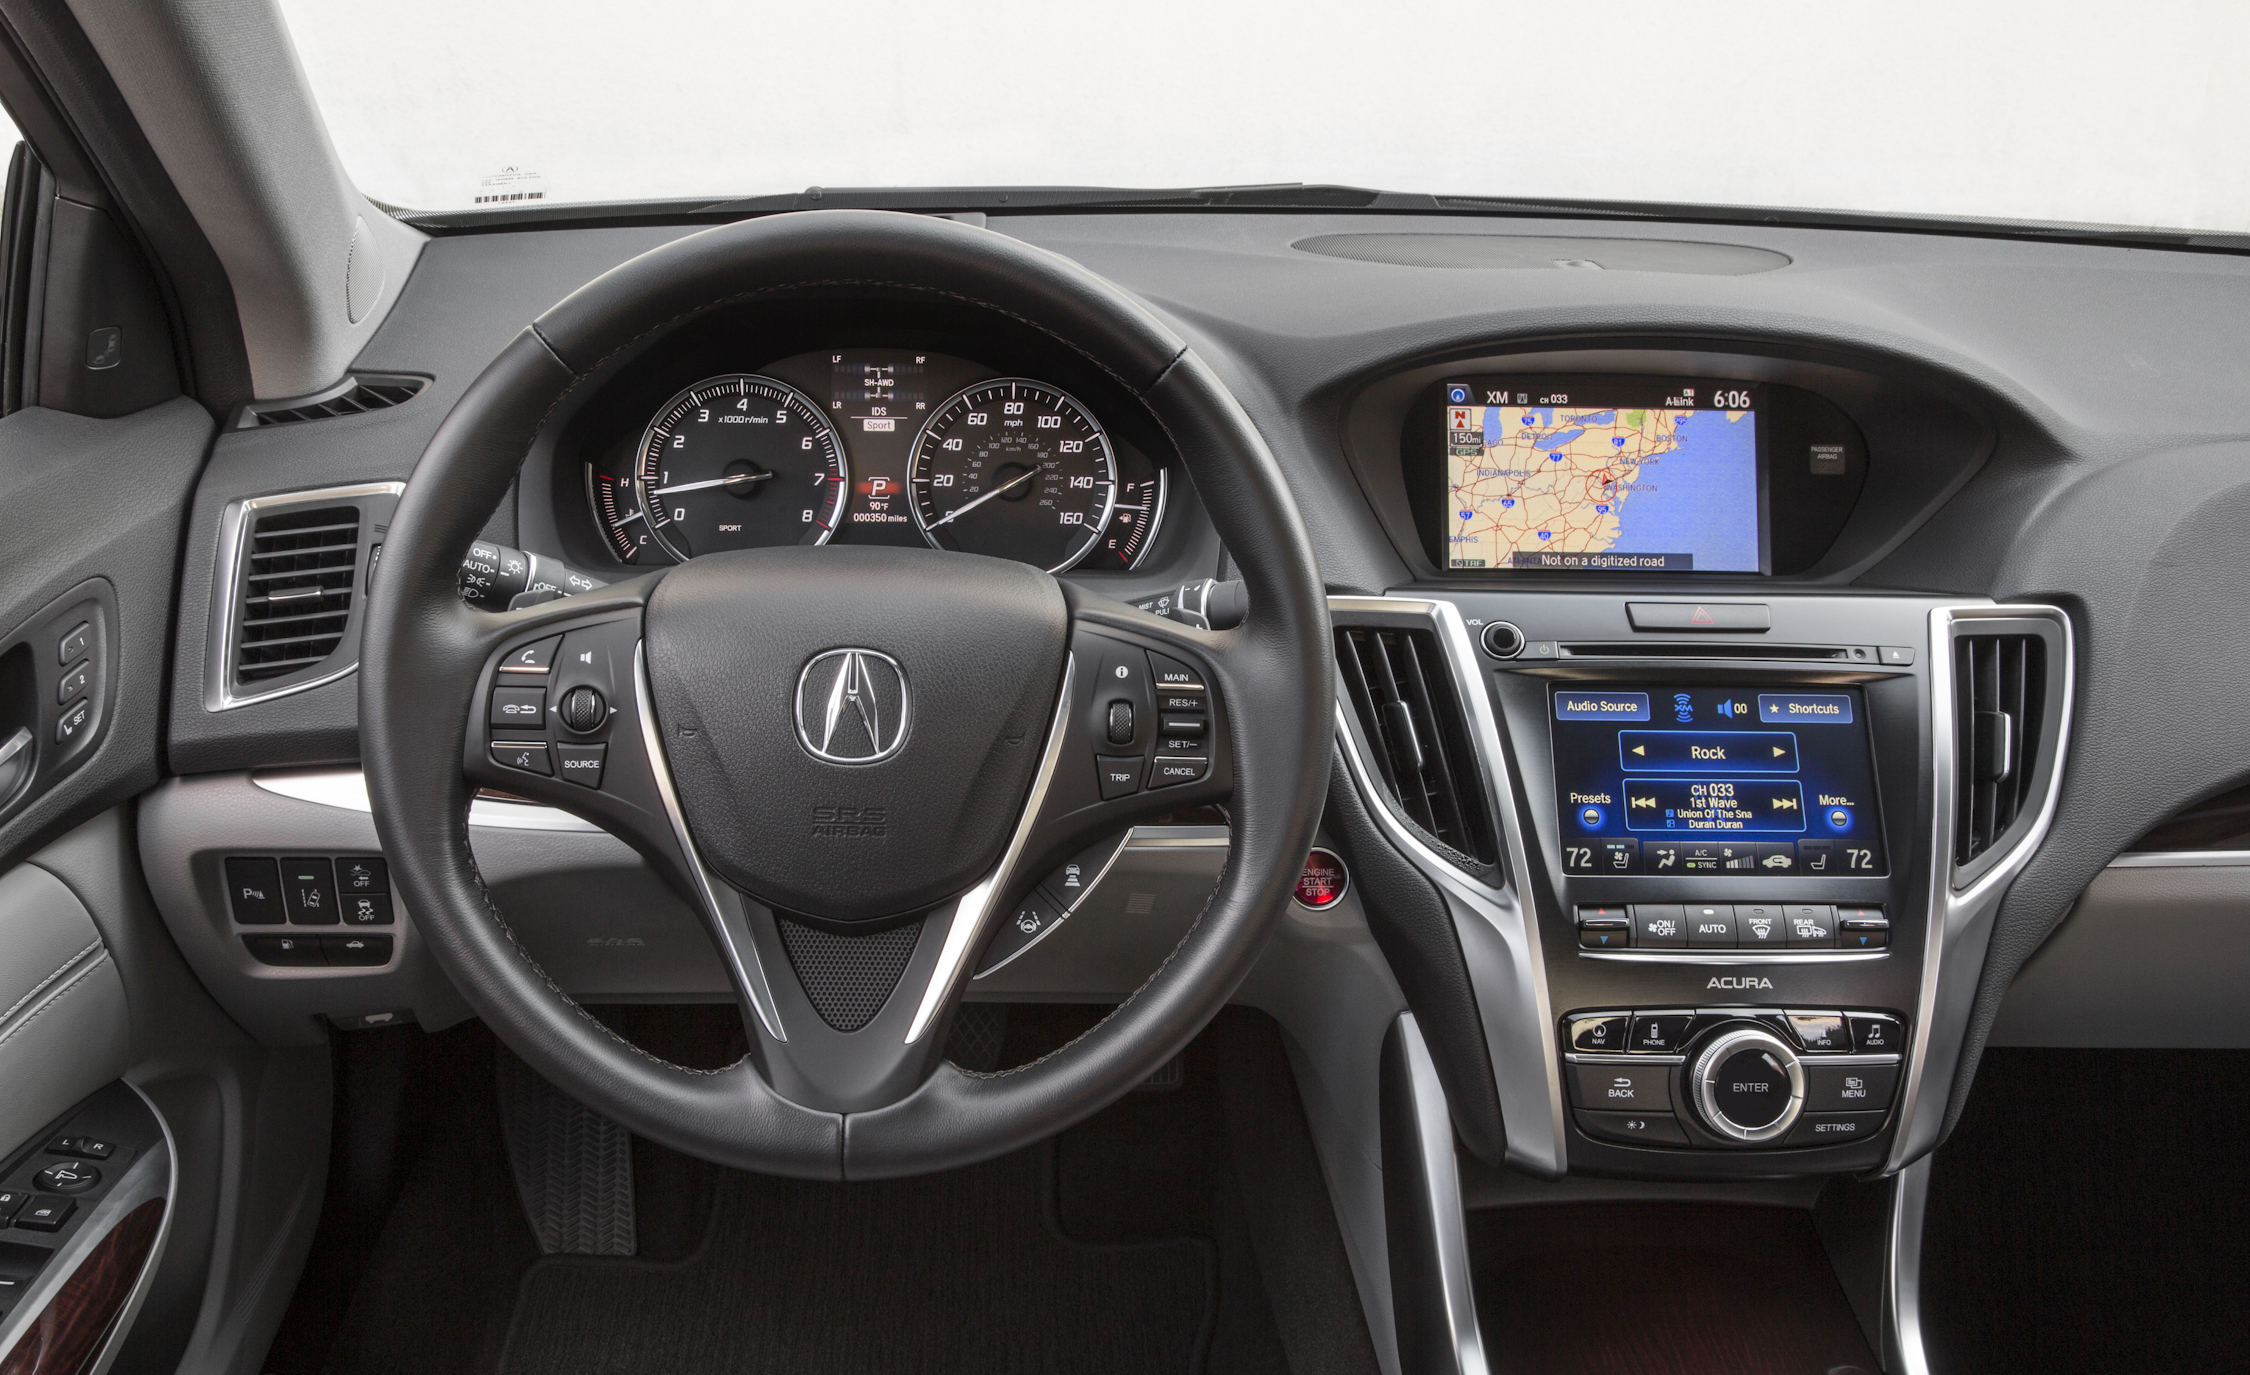 2015 Acura TLX 3.5L SH-AWD Interior Steering